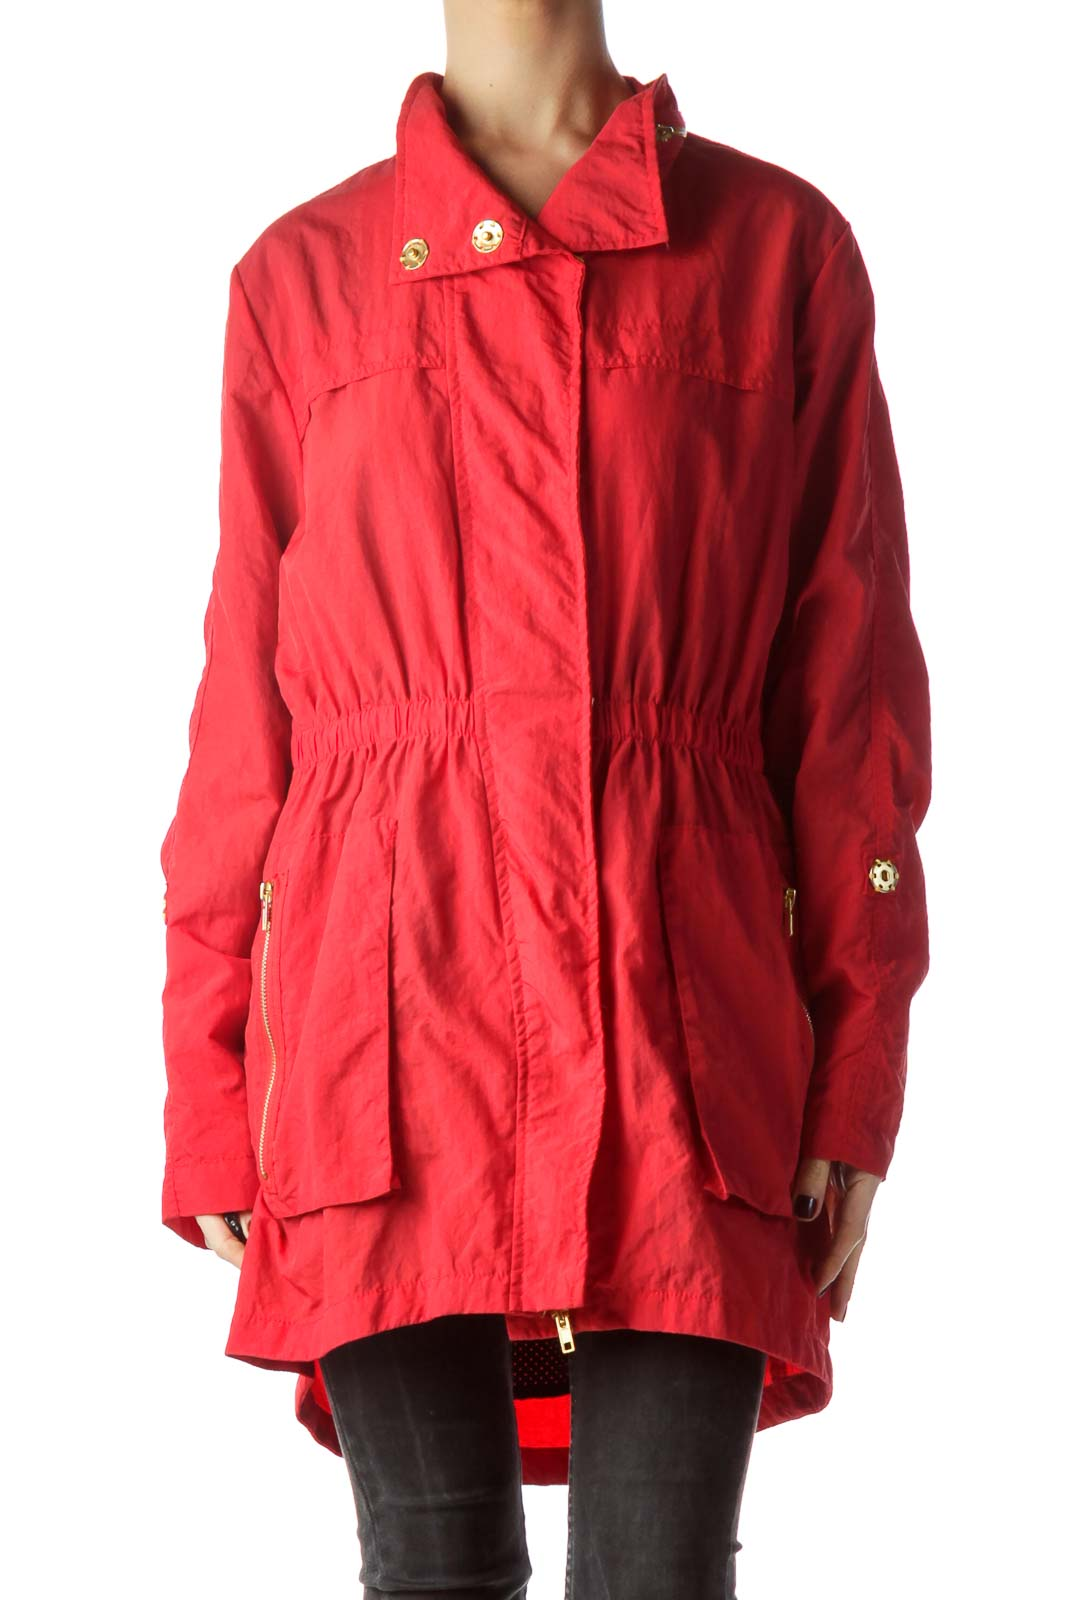 Red Gold Zippers and Buttons Long Jacket